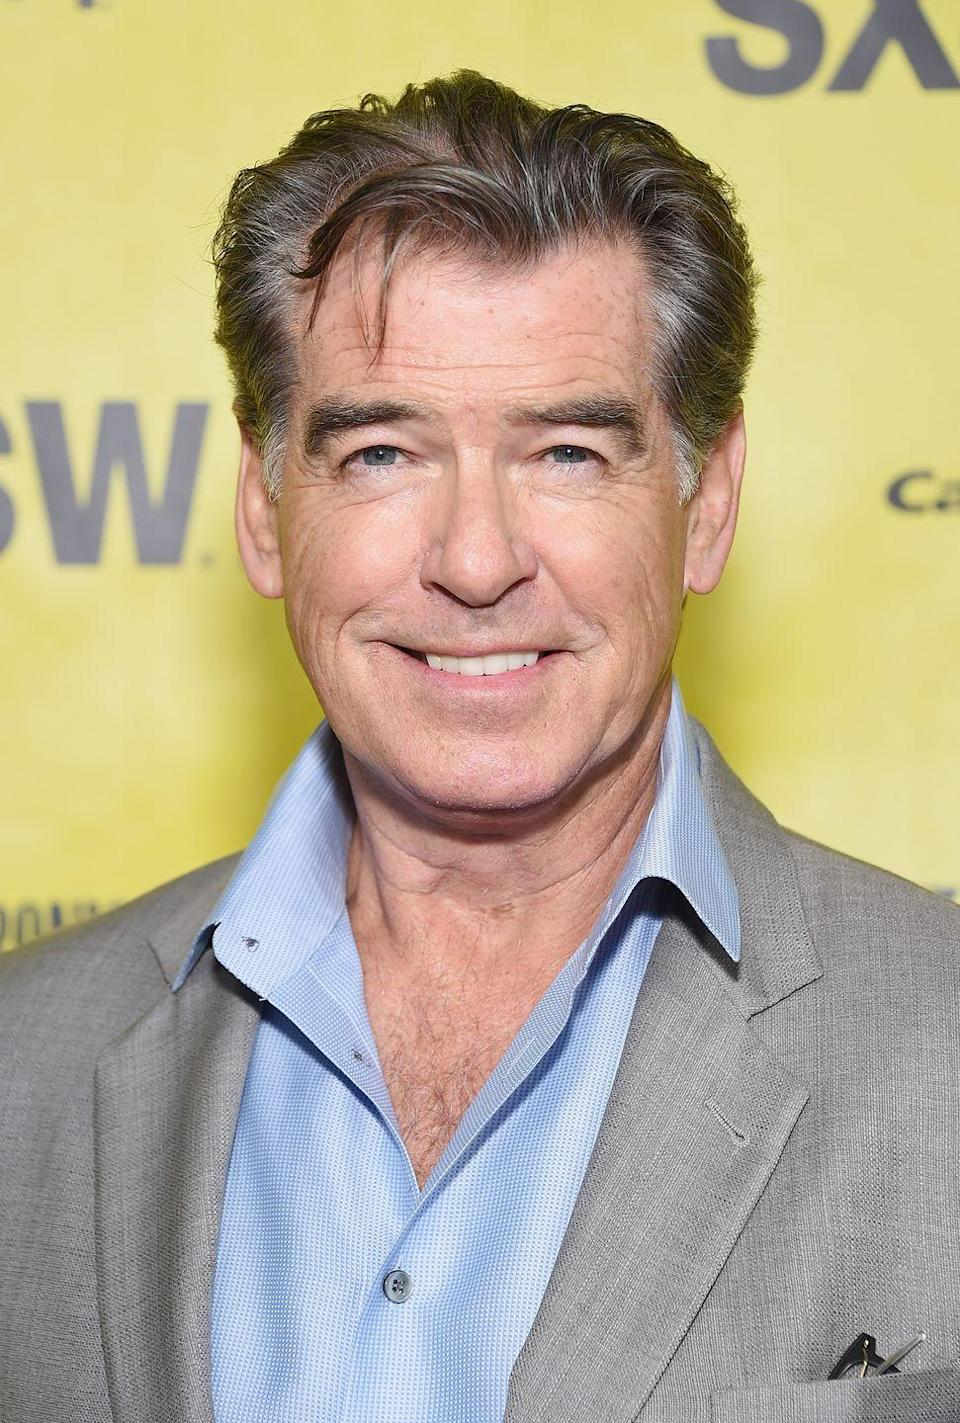 <p>We were first introduced to Pierce Brosnan's chest hair when he played James Bond in <em>GoldenEye</em> in 1995. Since then, he's made it his best red carpet accessory.</p>